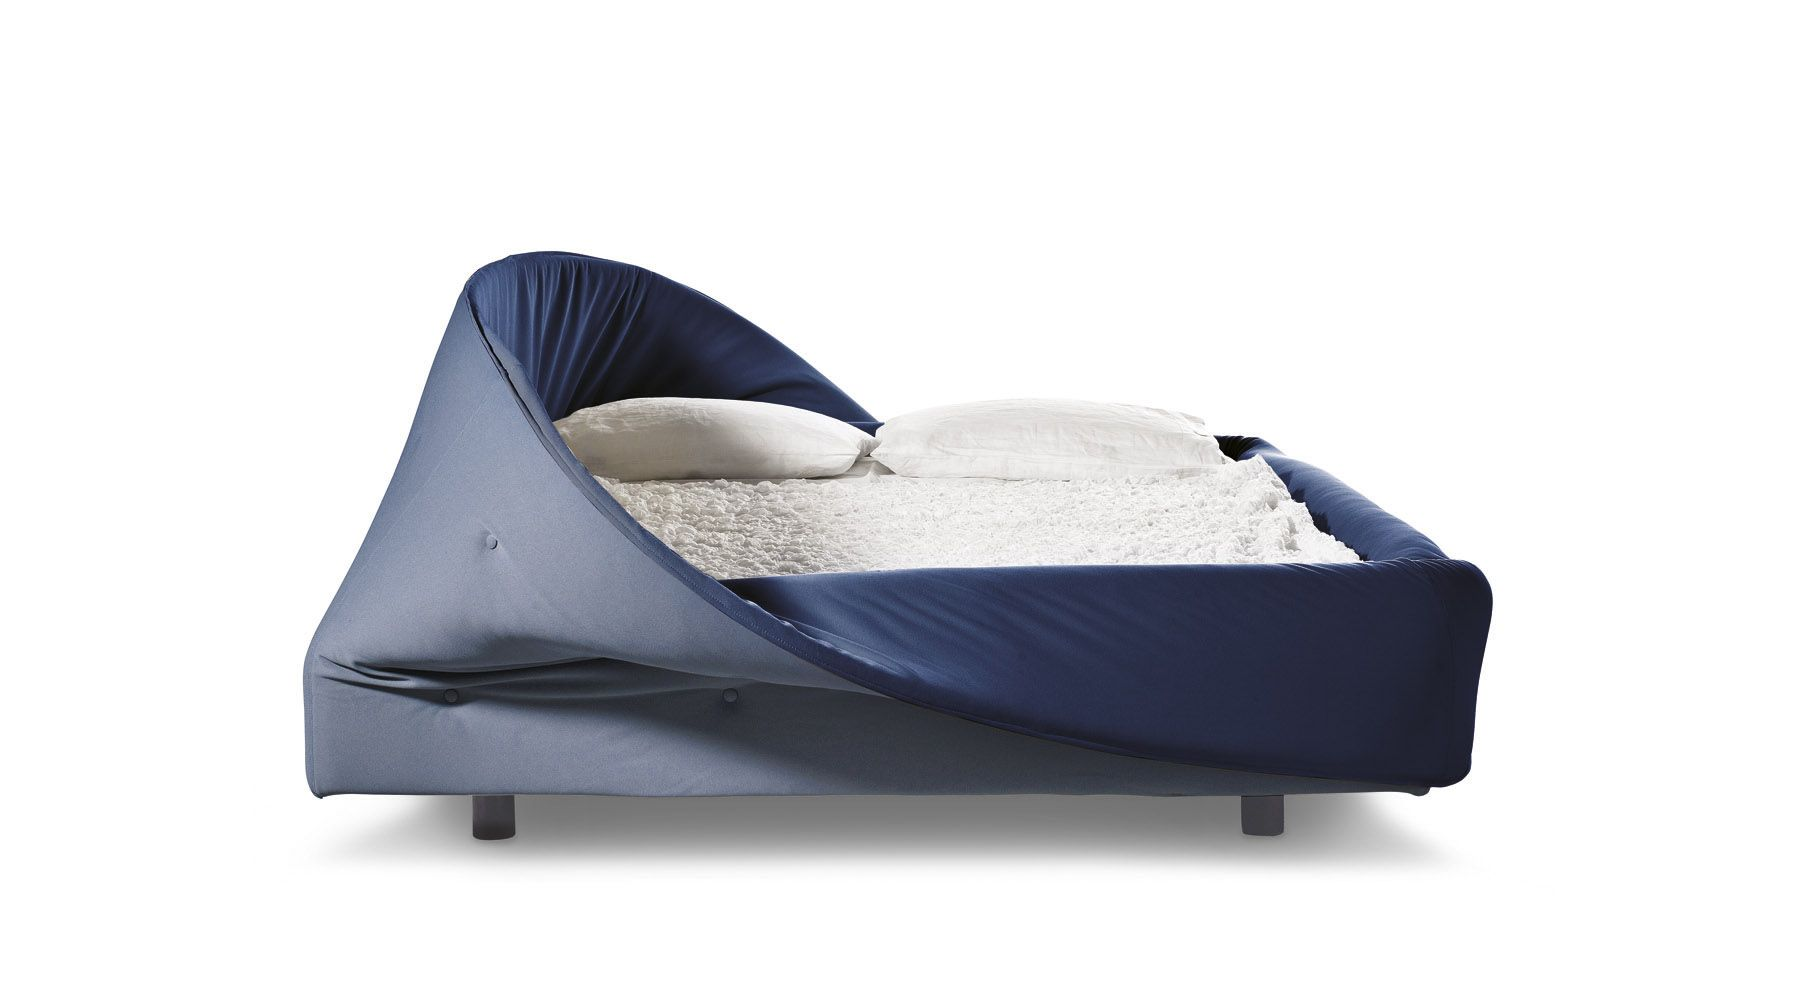 Colletto Bed - A bed like a nest